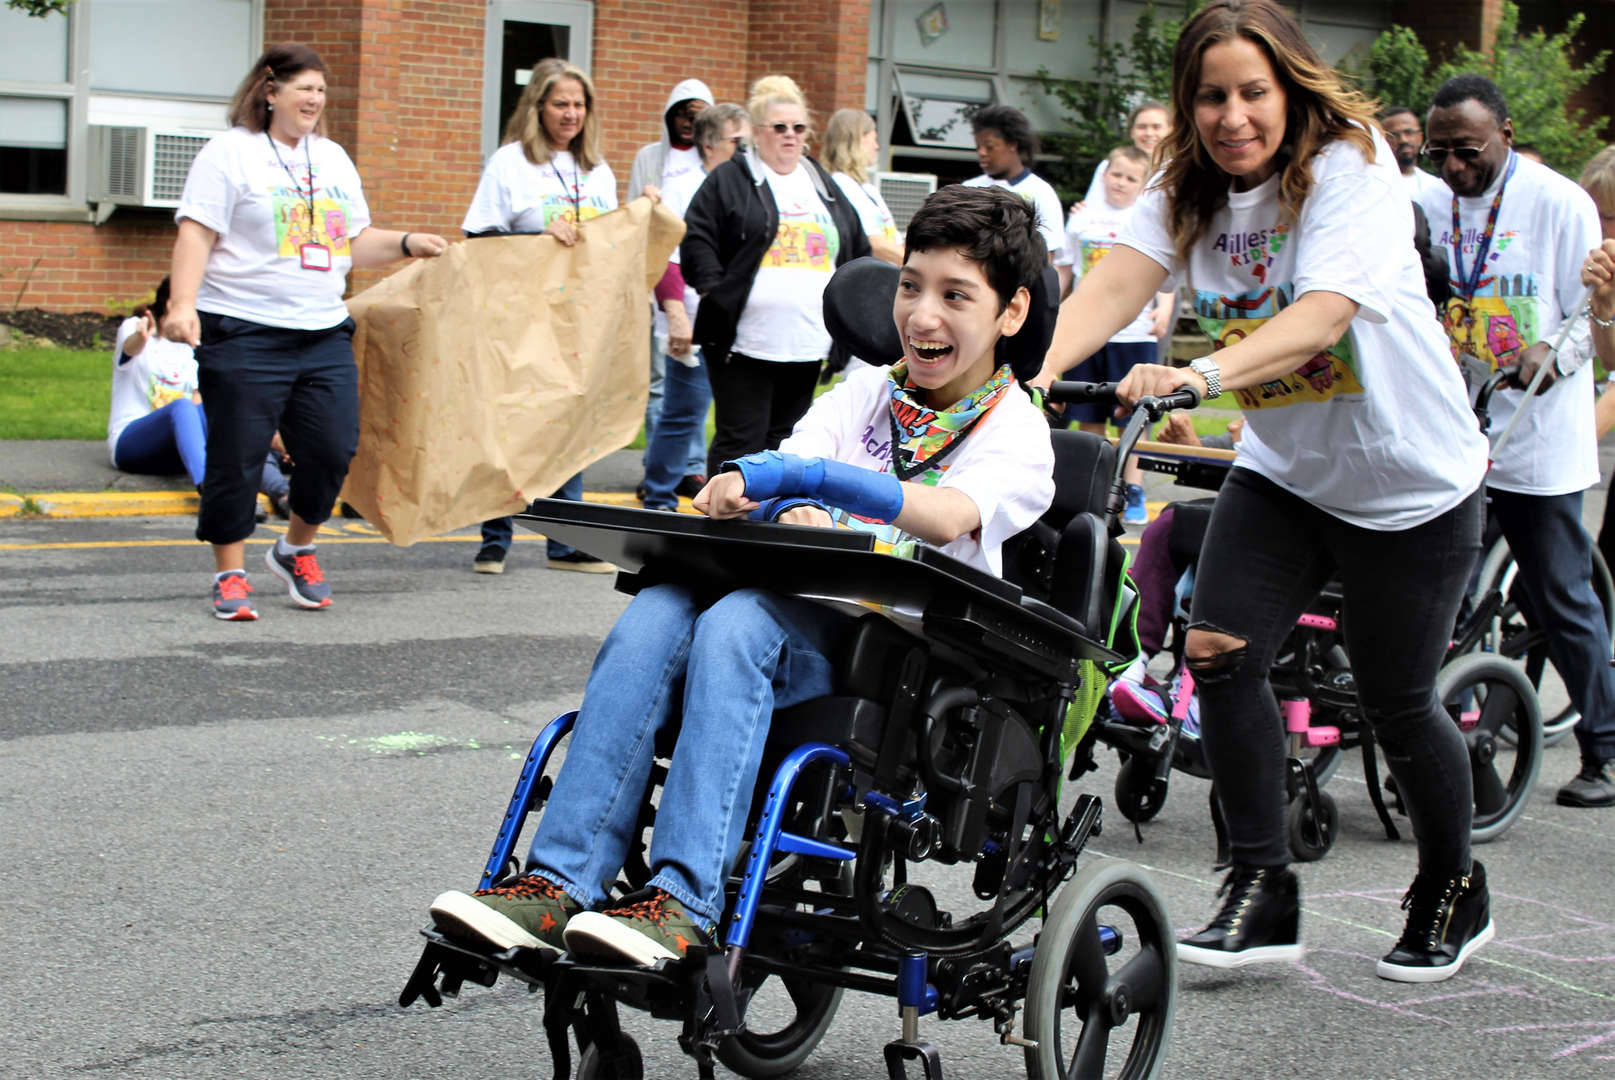 A staff member pushes a student in a wheelchair.